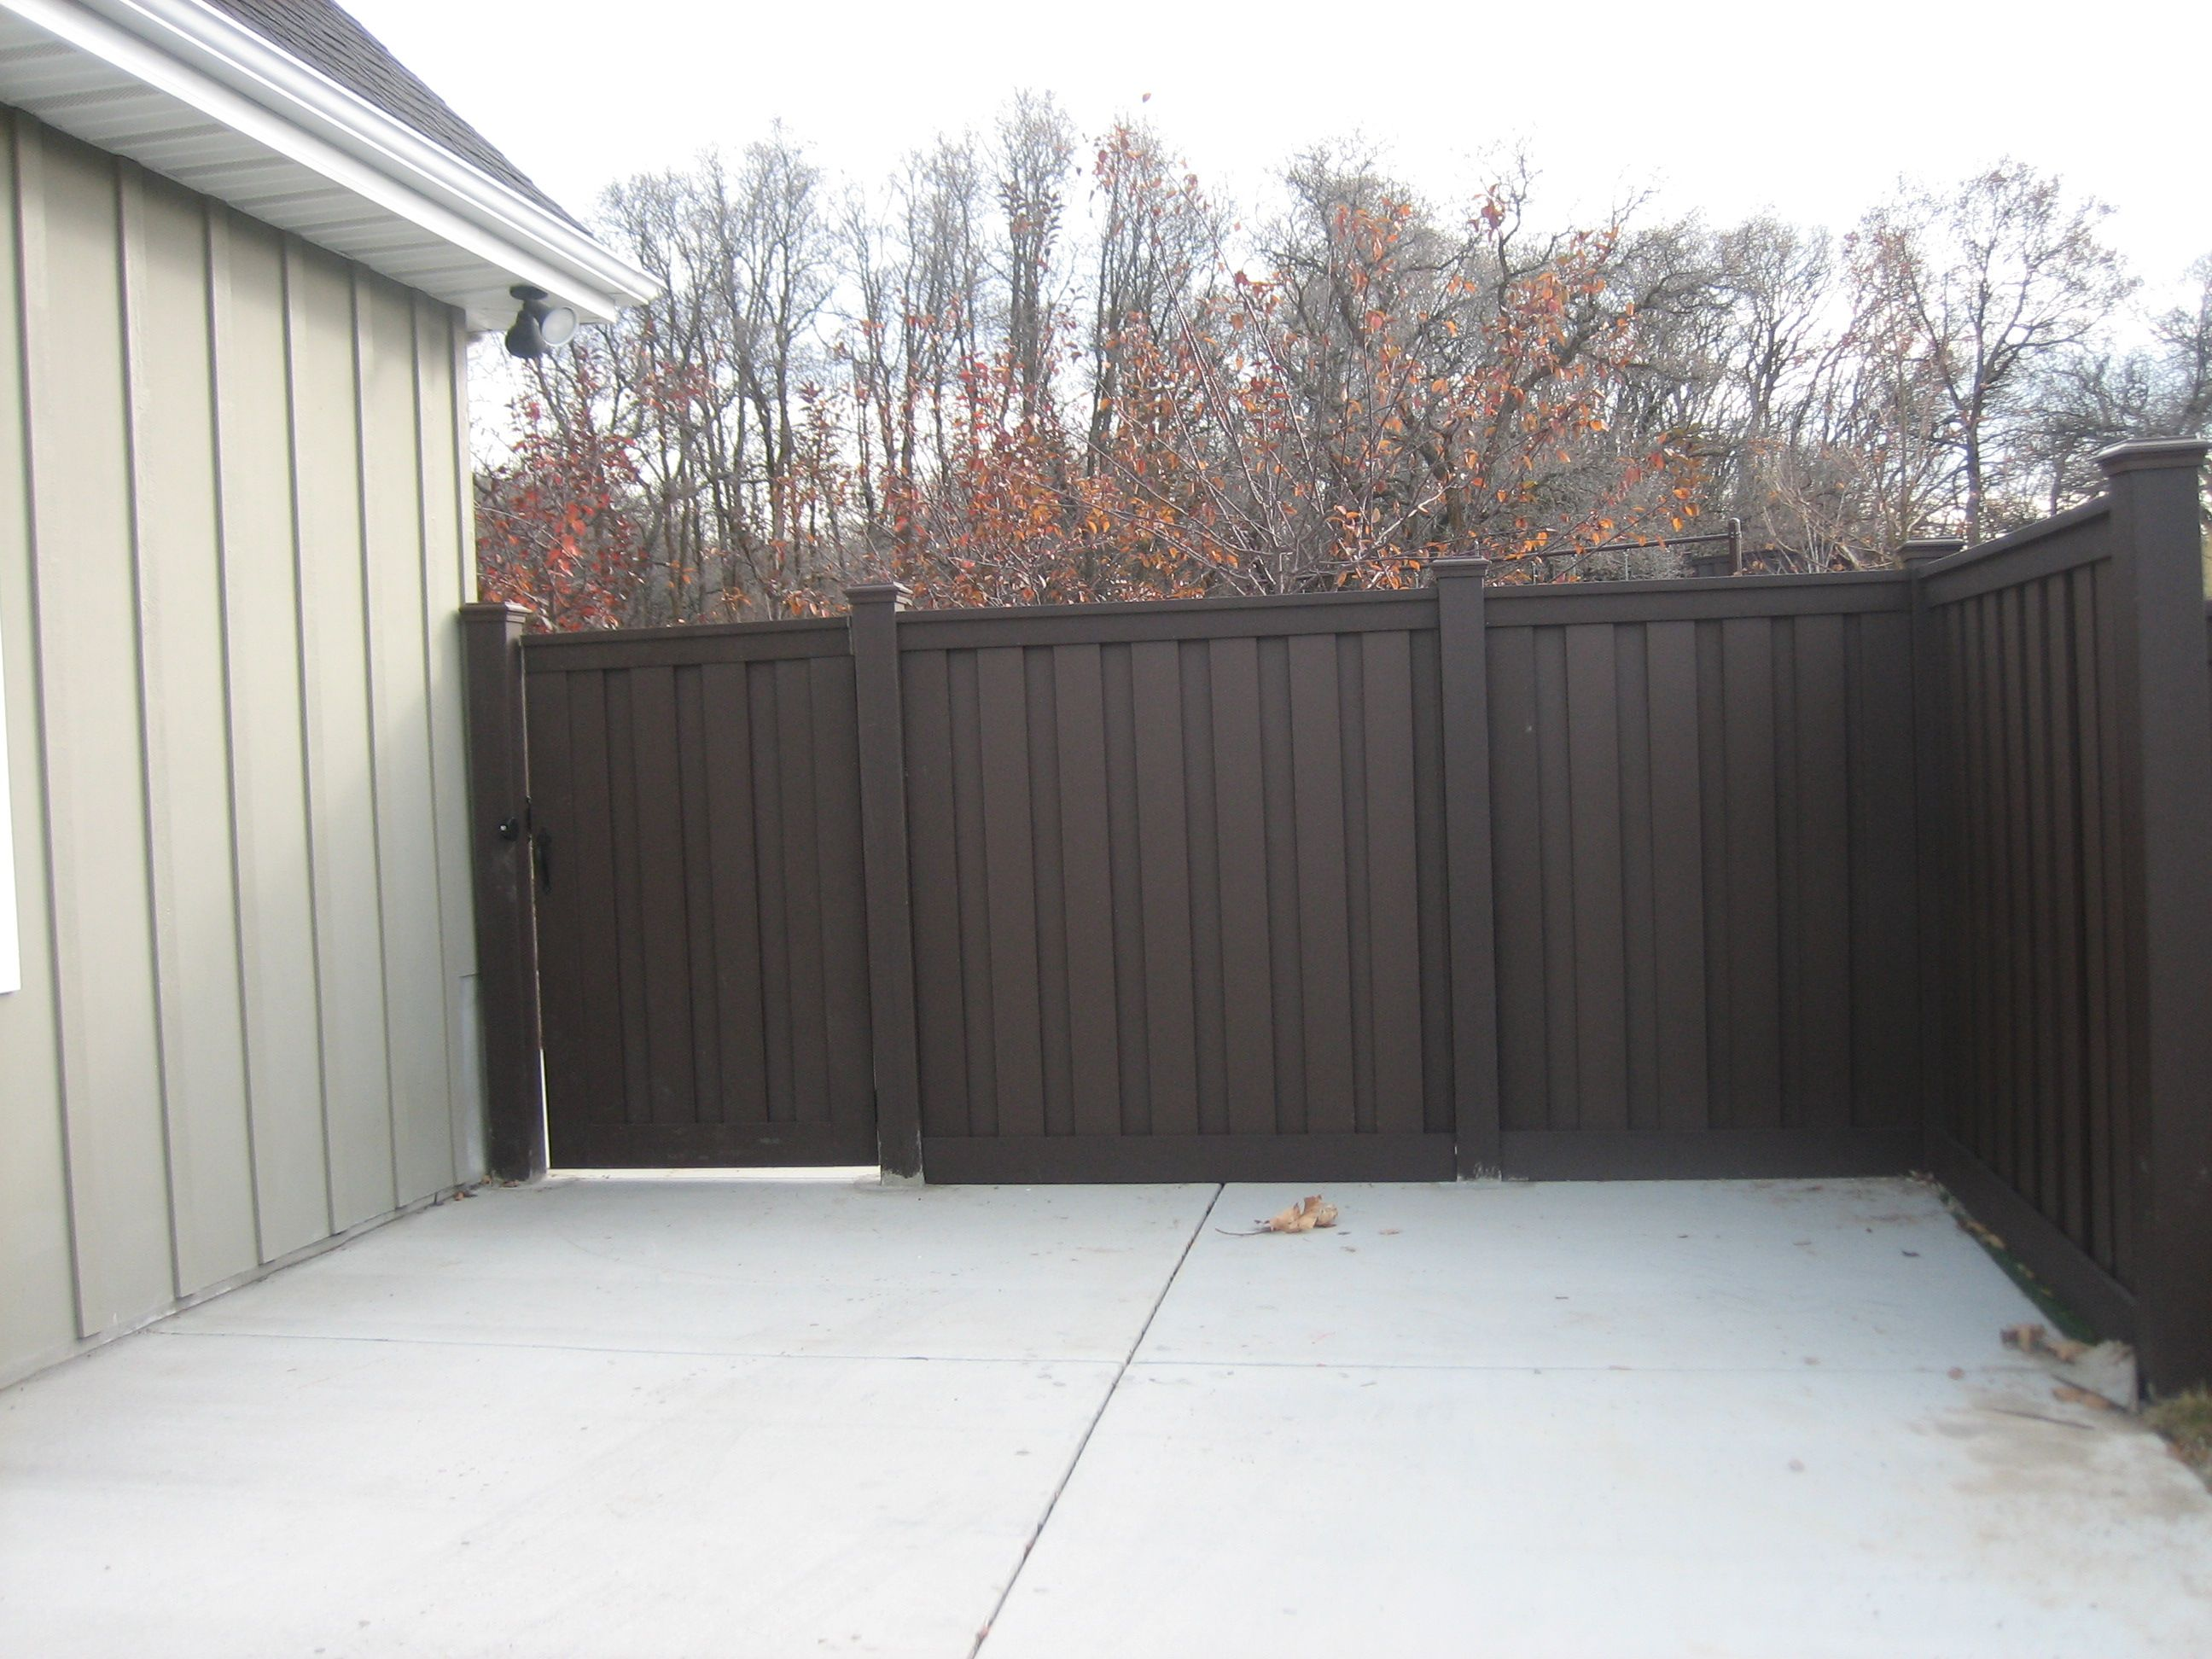 Trex fencing More durable than vinyl and more stylish